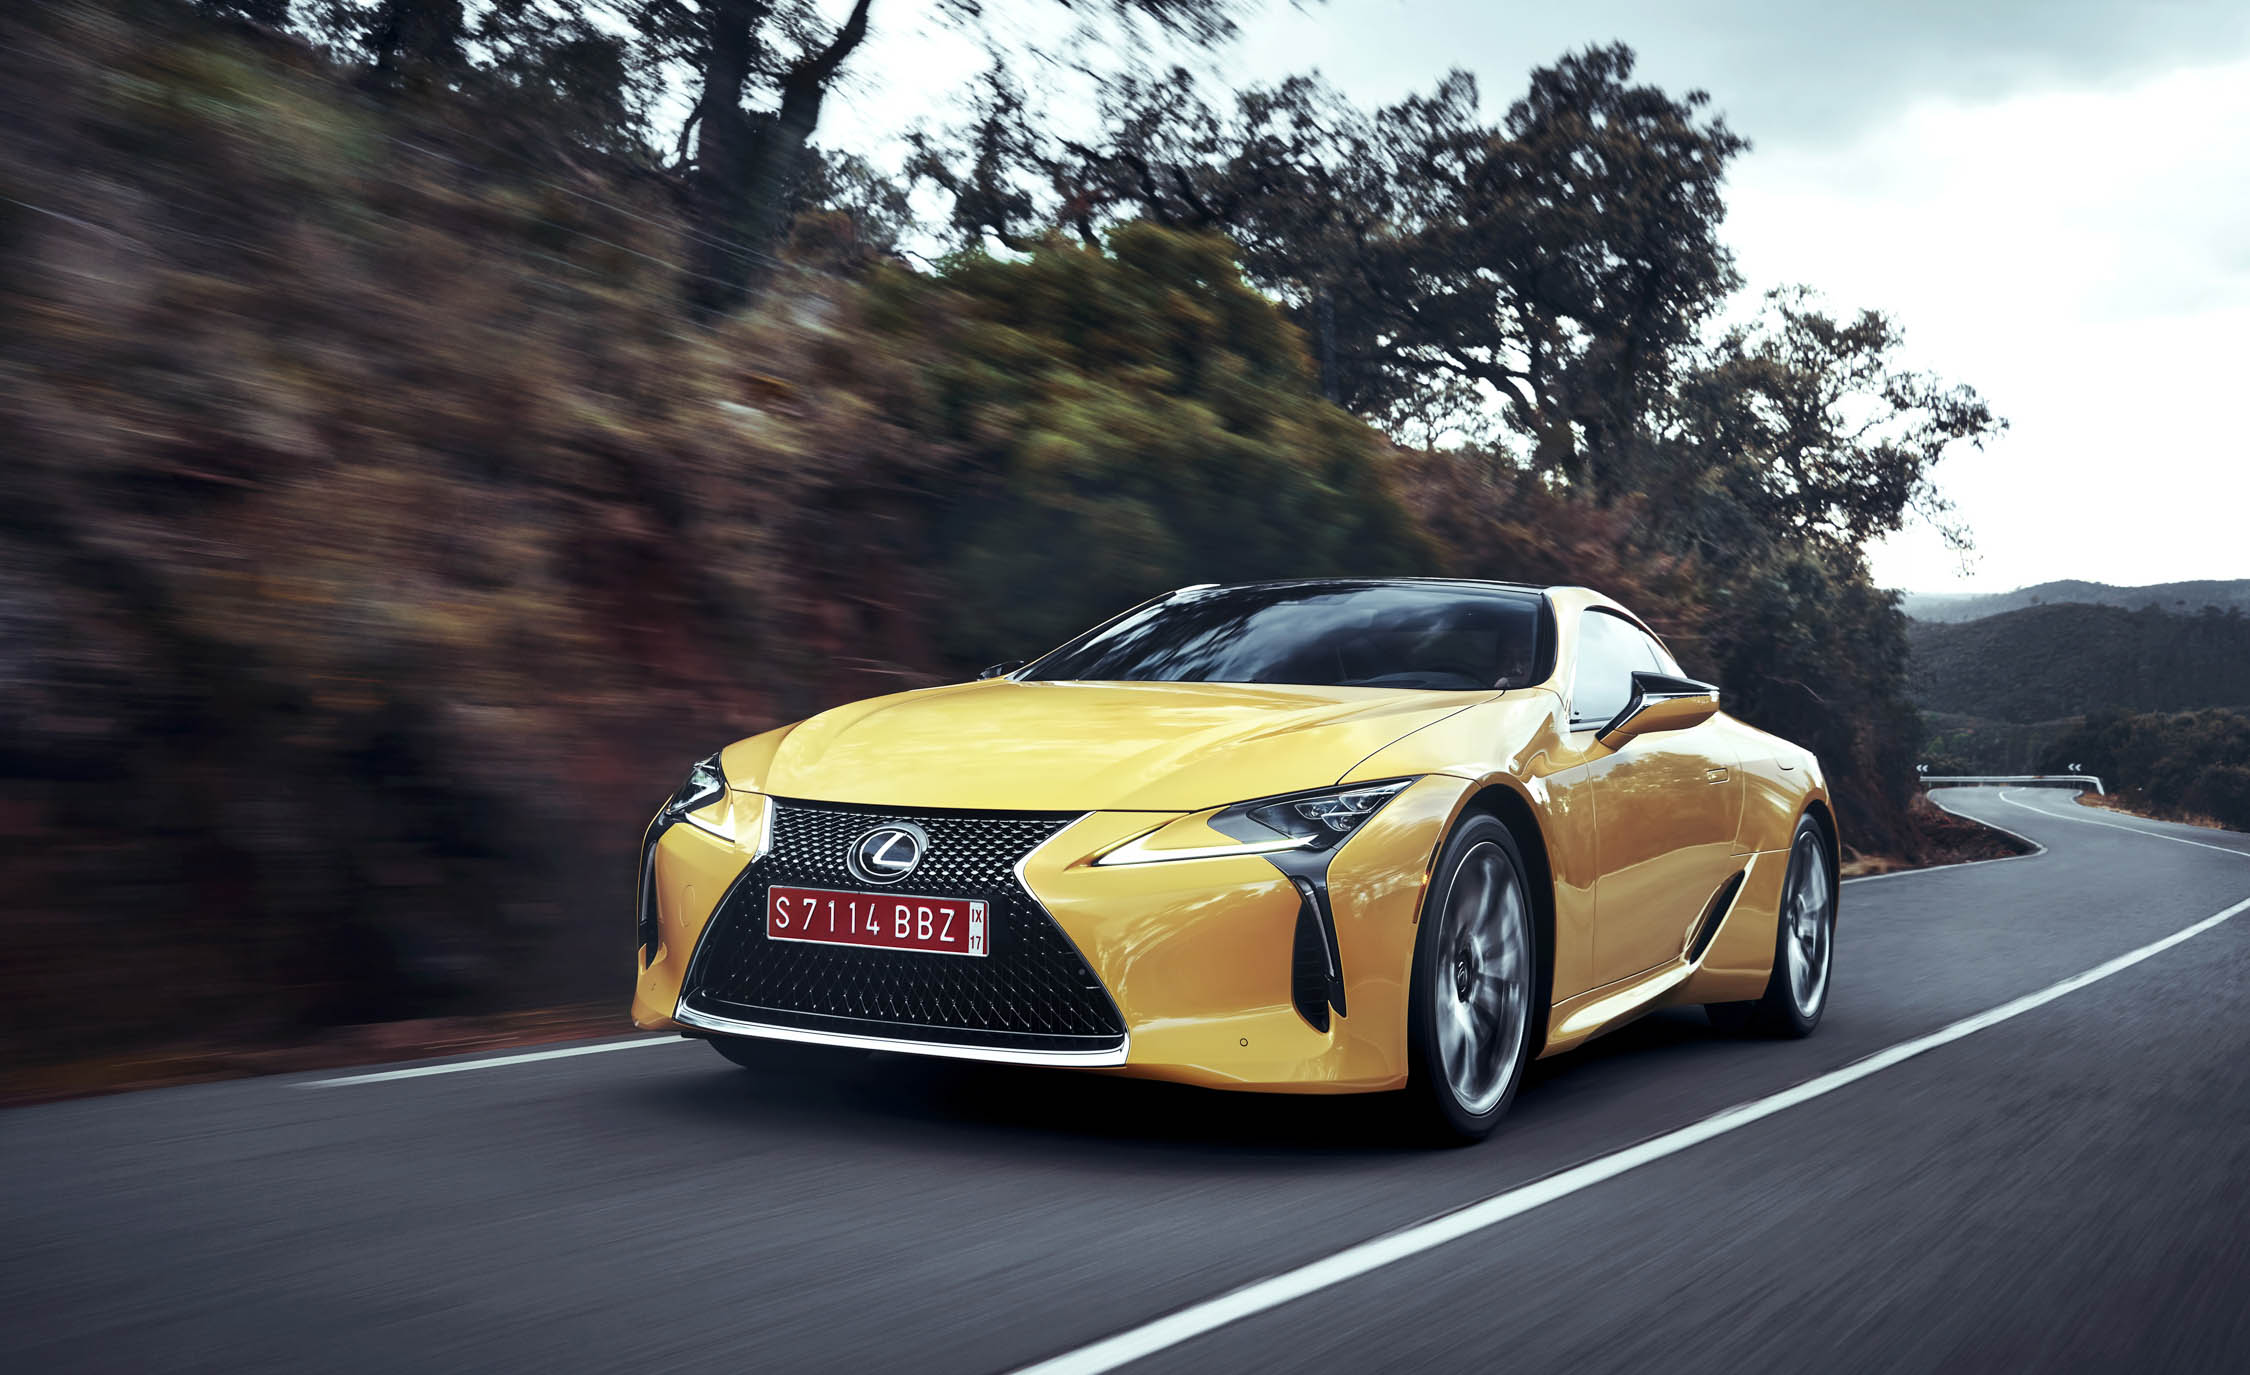 2018 Lexus Lc500 Yellow Test Drive Front Corner View (View 75 of 84)